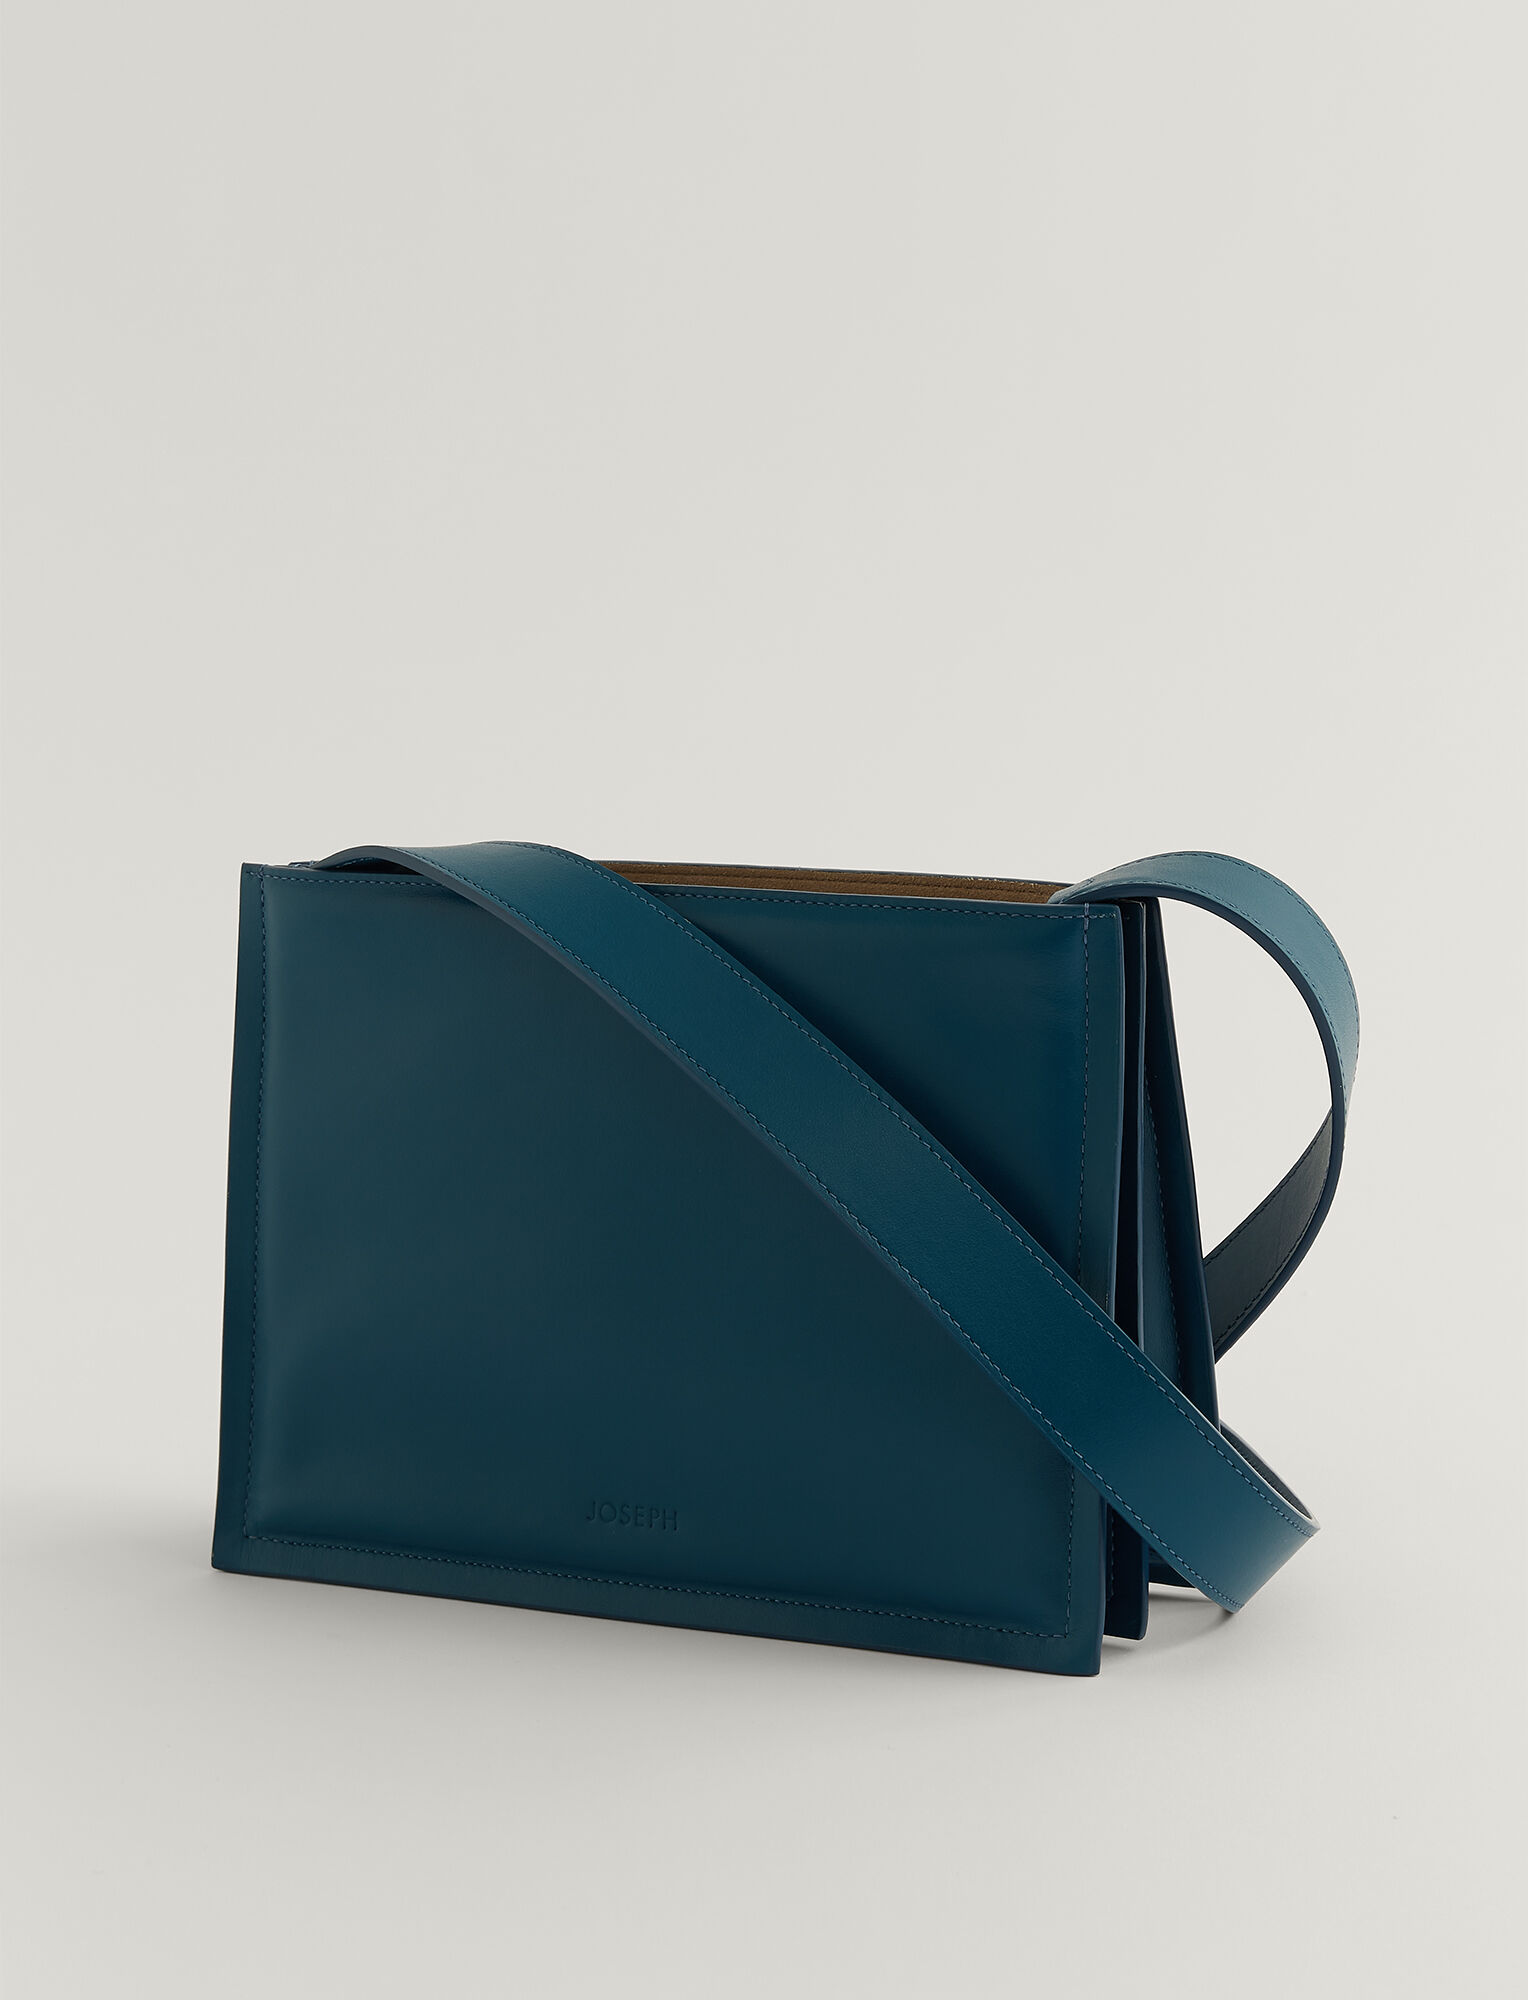 Joseph, Leather Triple Bag, in BLUE STEEL